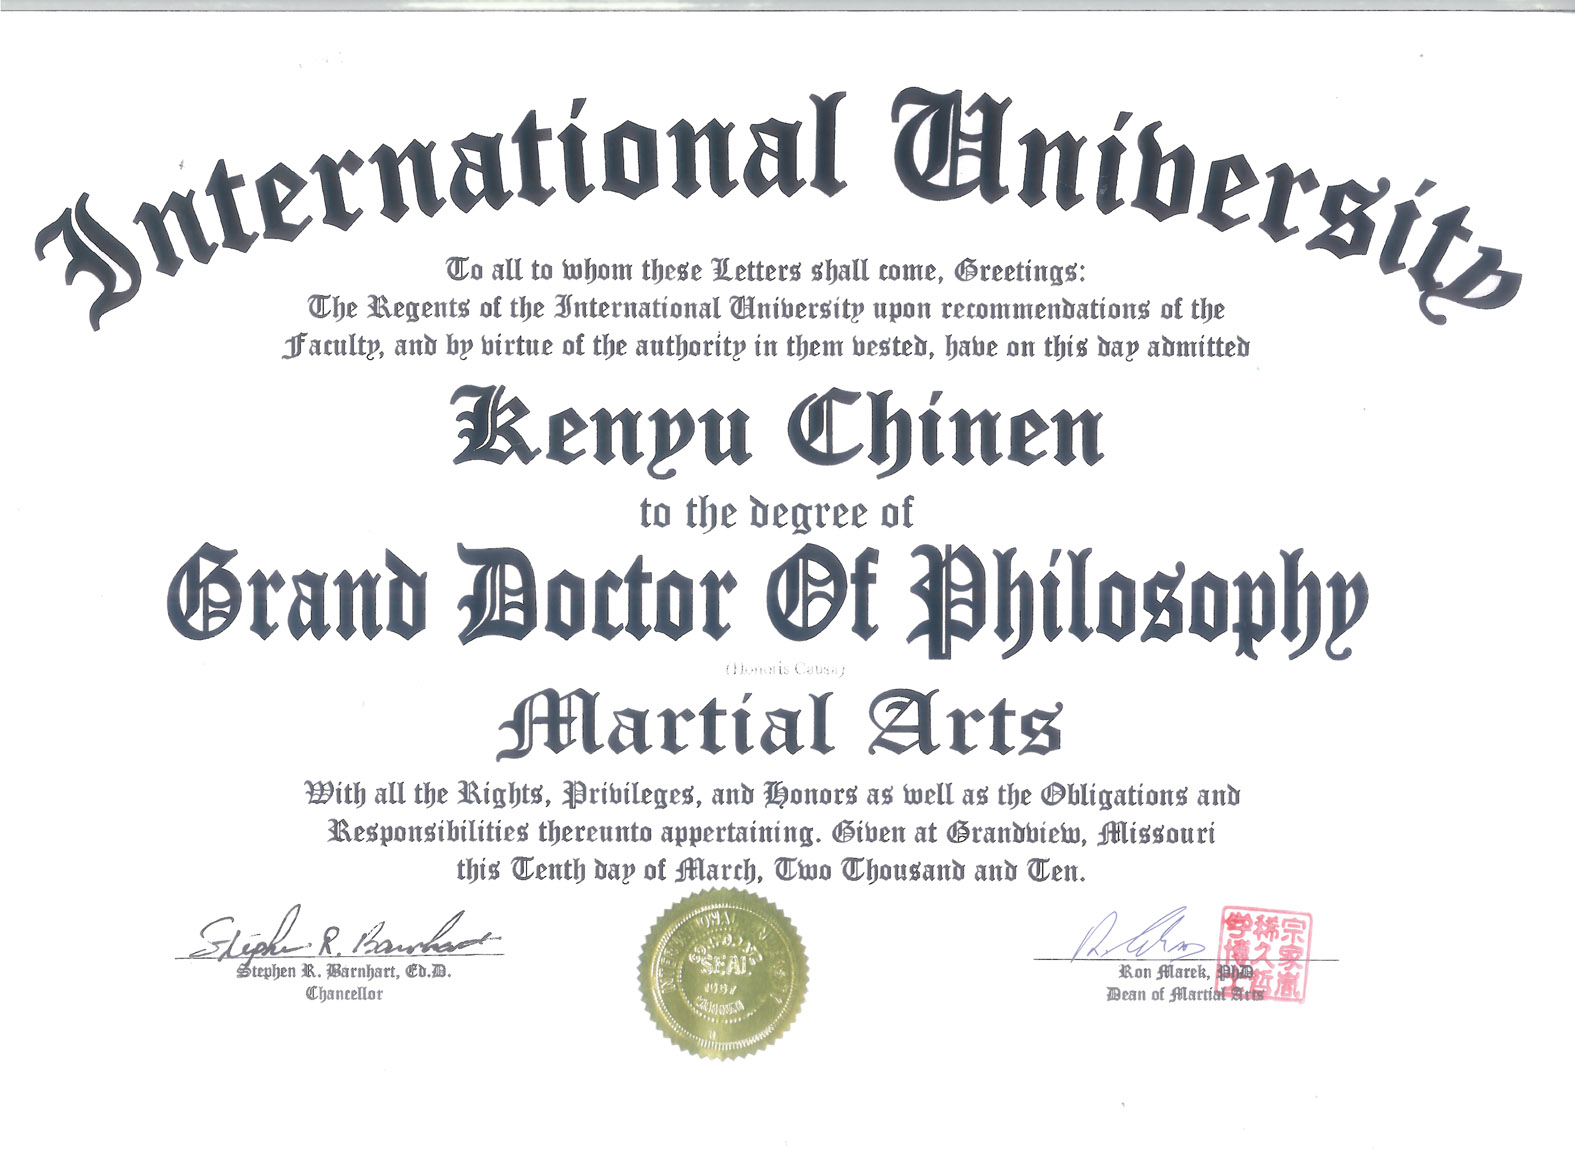 grand doctor of philosophy martial art